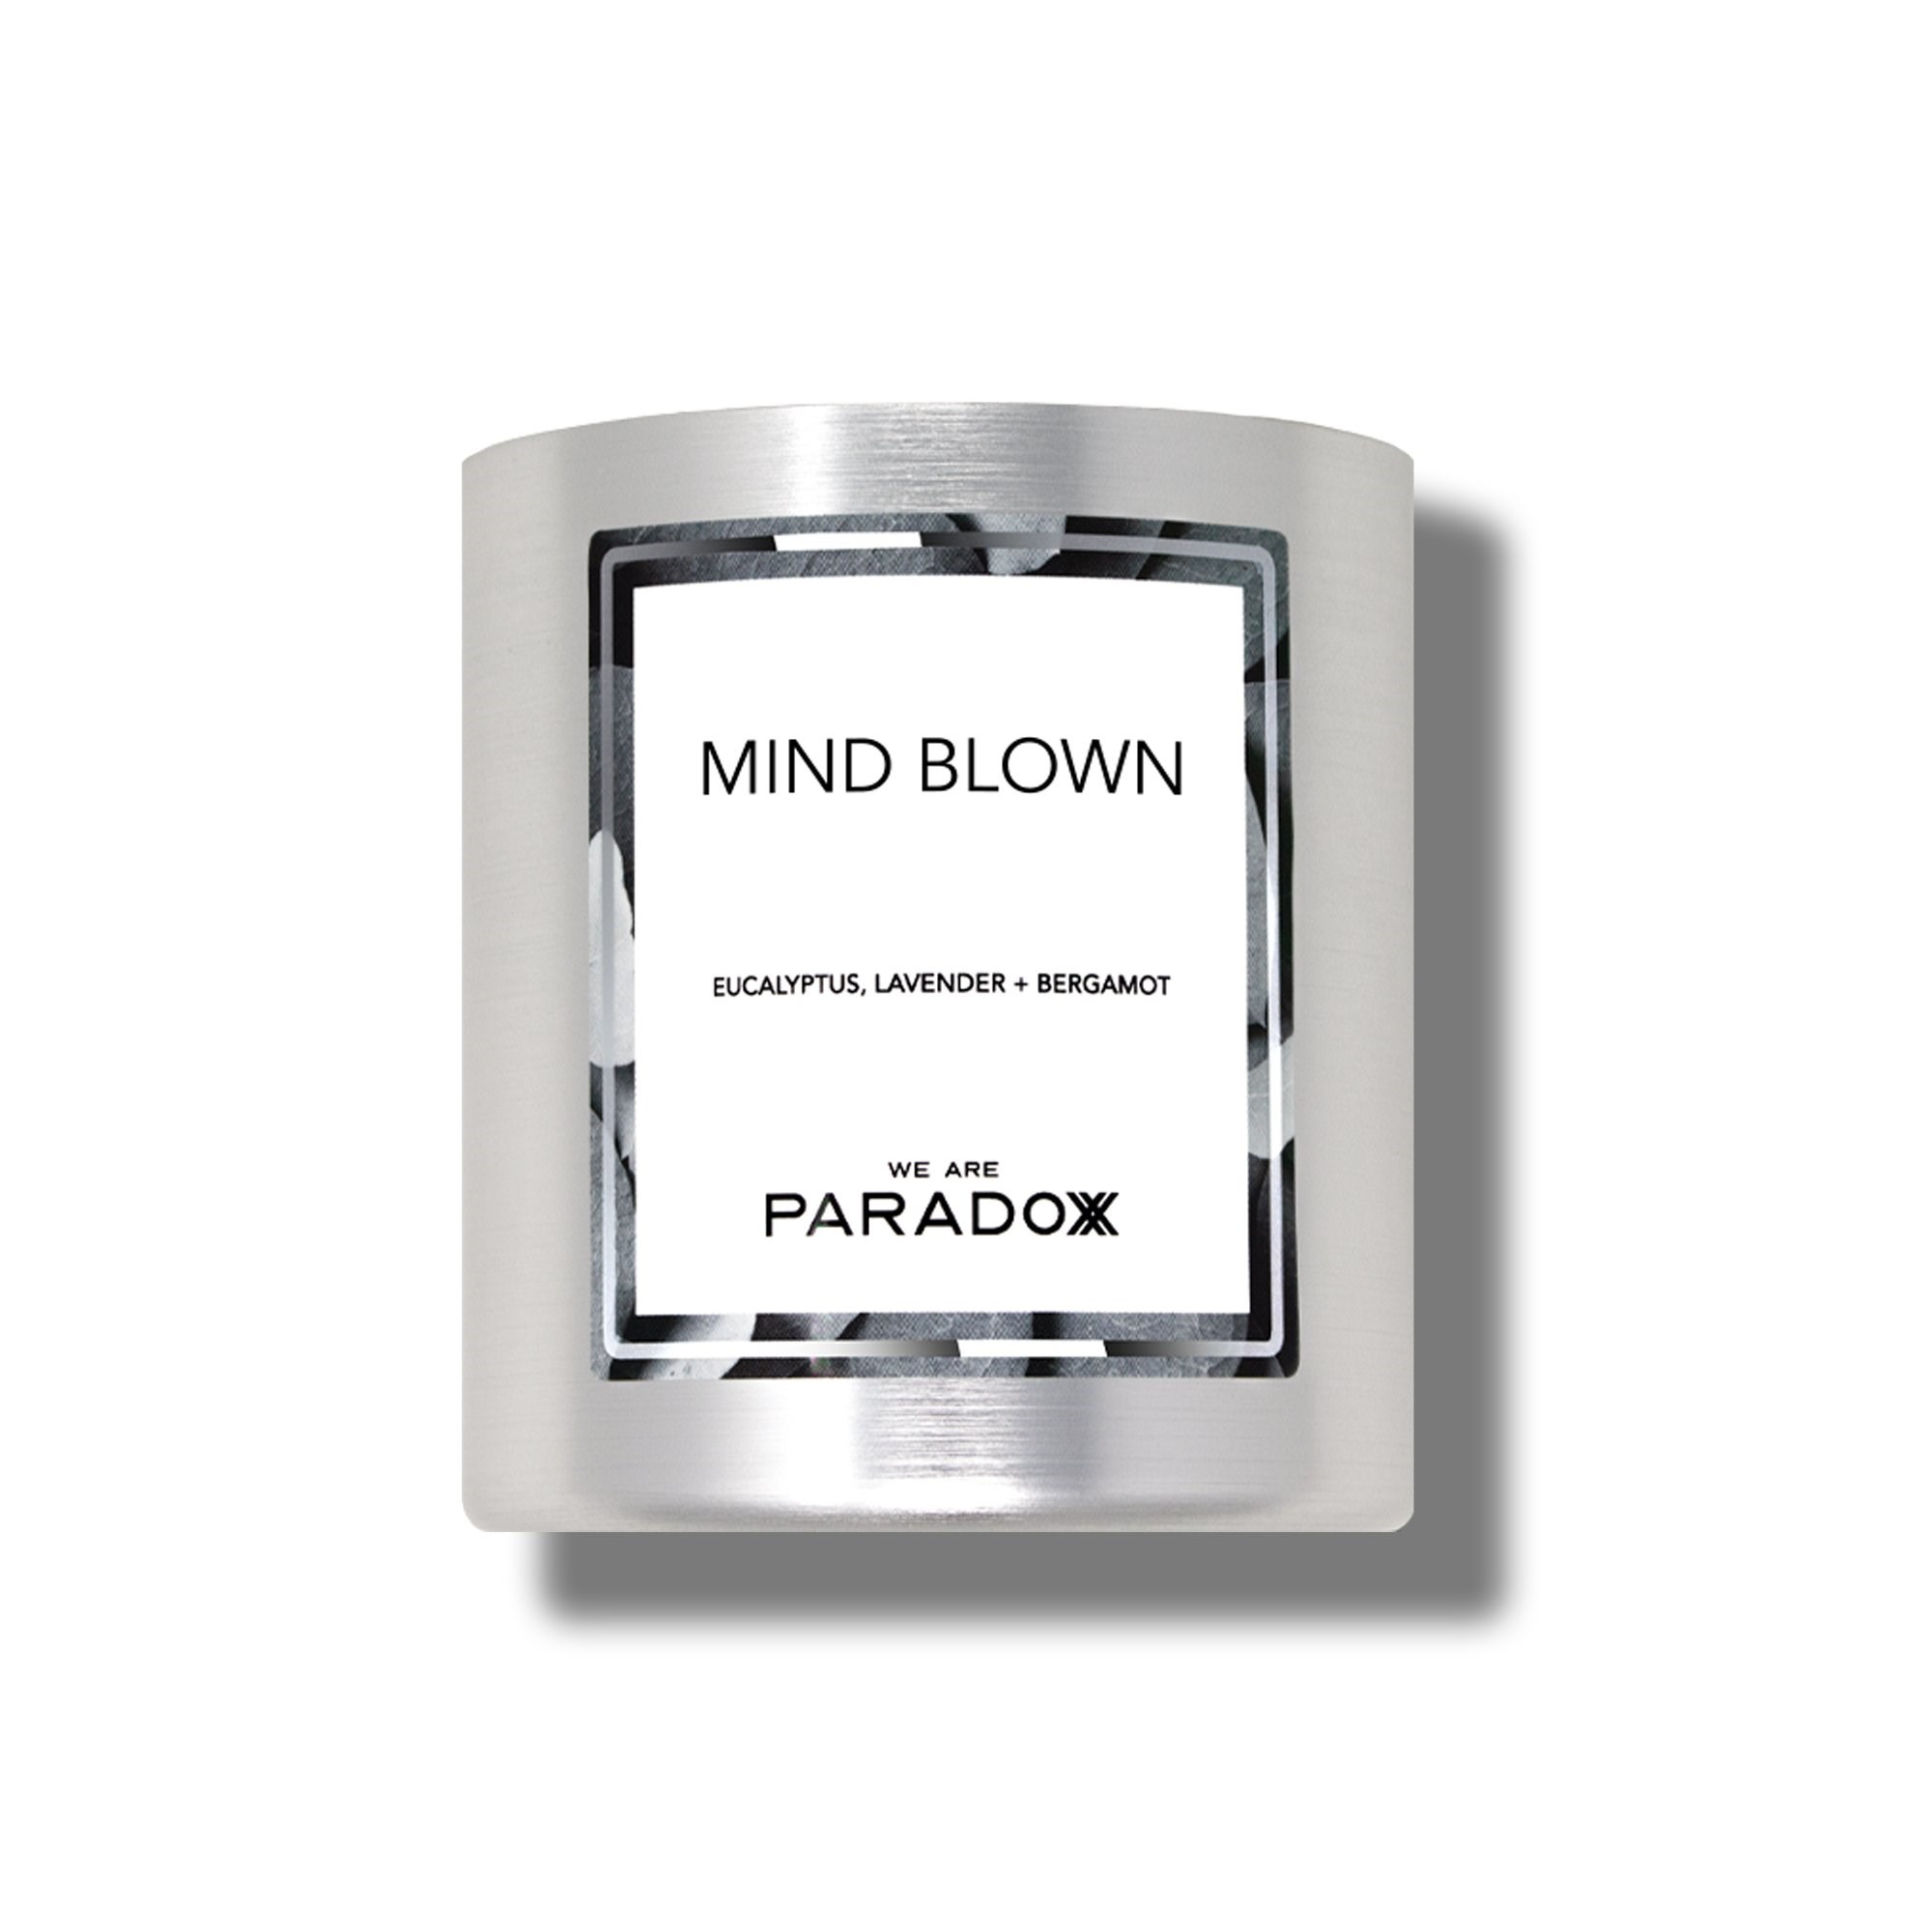 MIND BLOWN HAIR + BODY TREATMENT OIL CANDLE 1